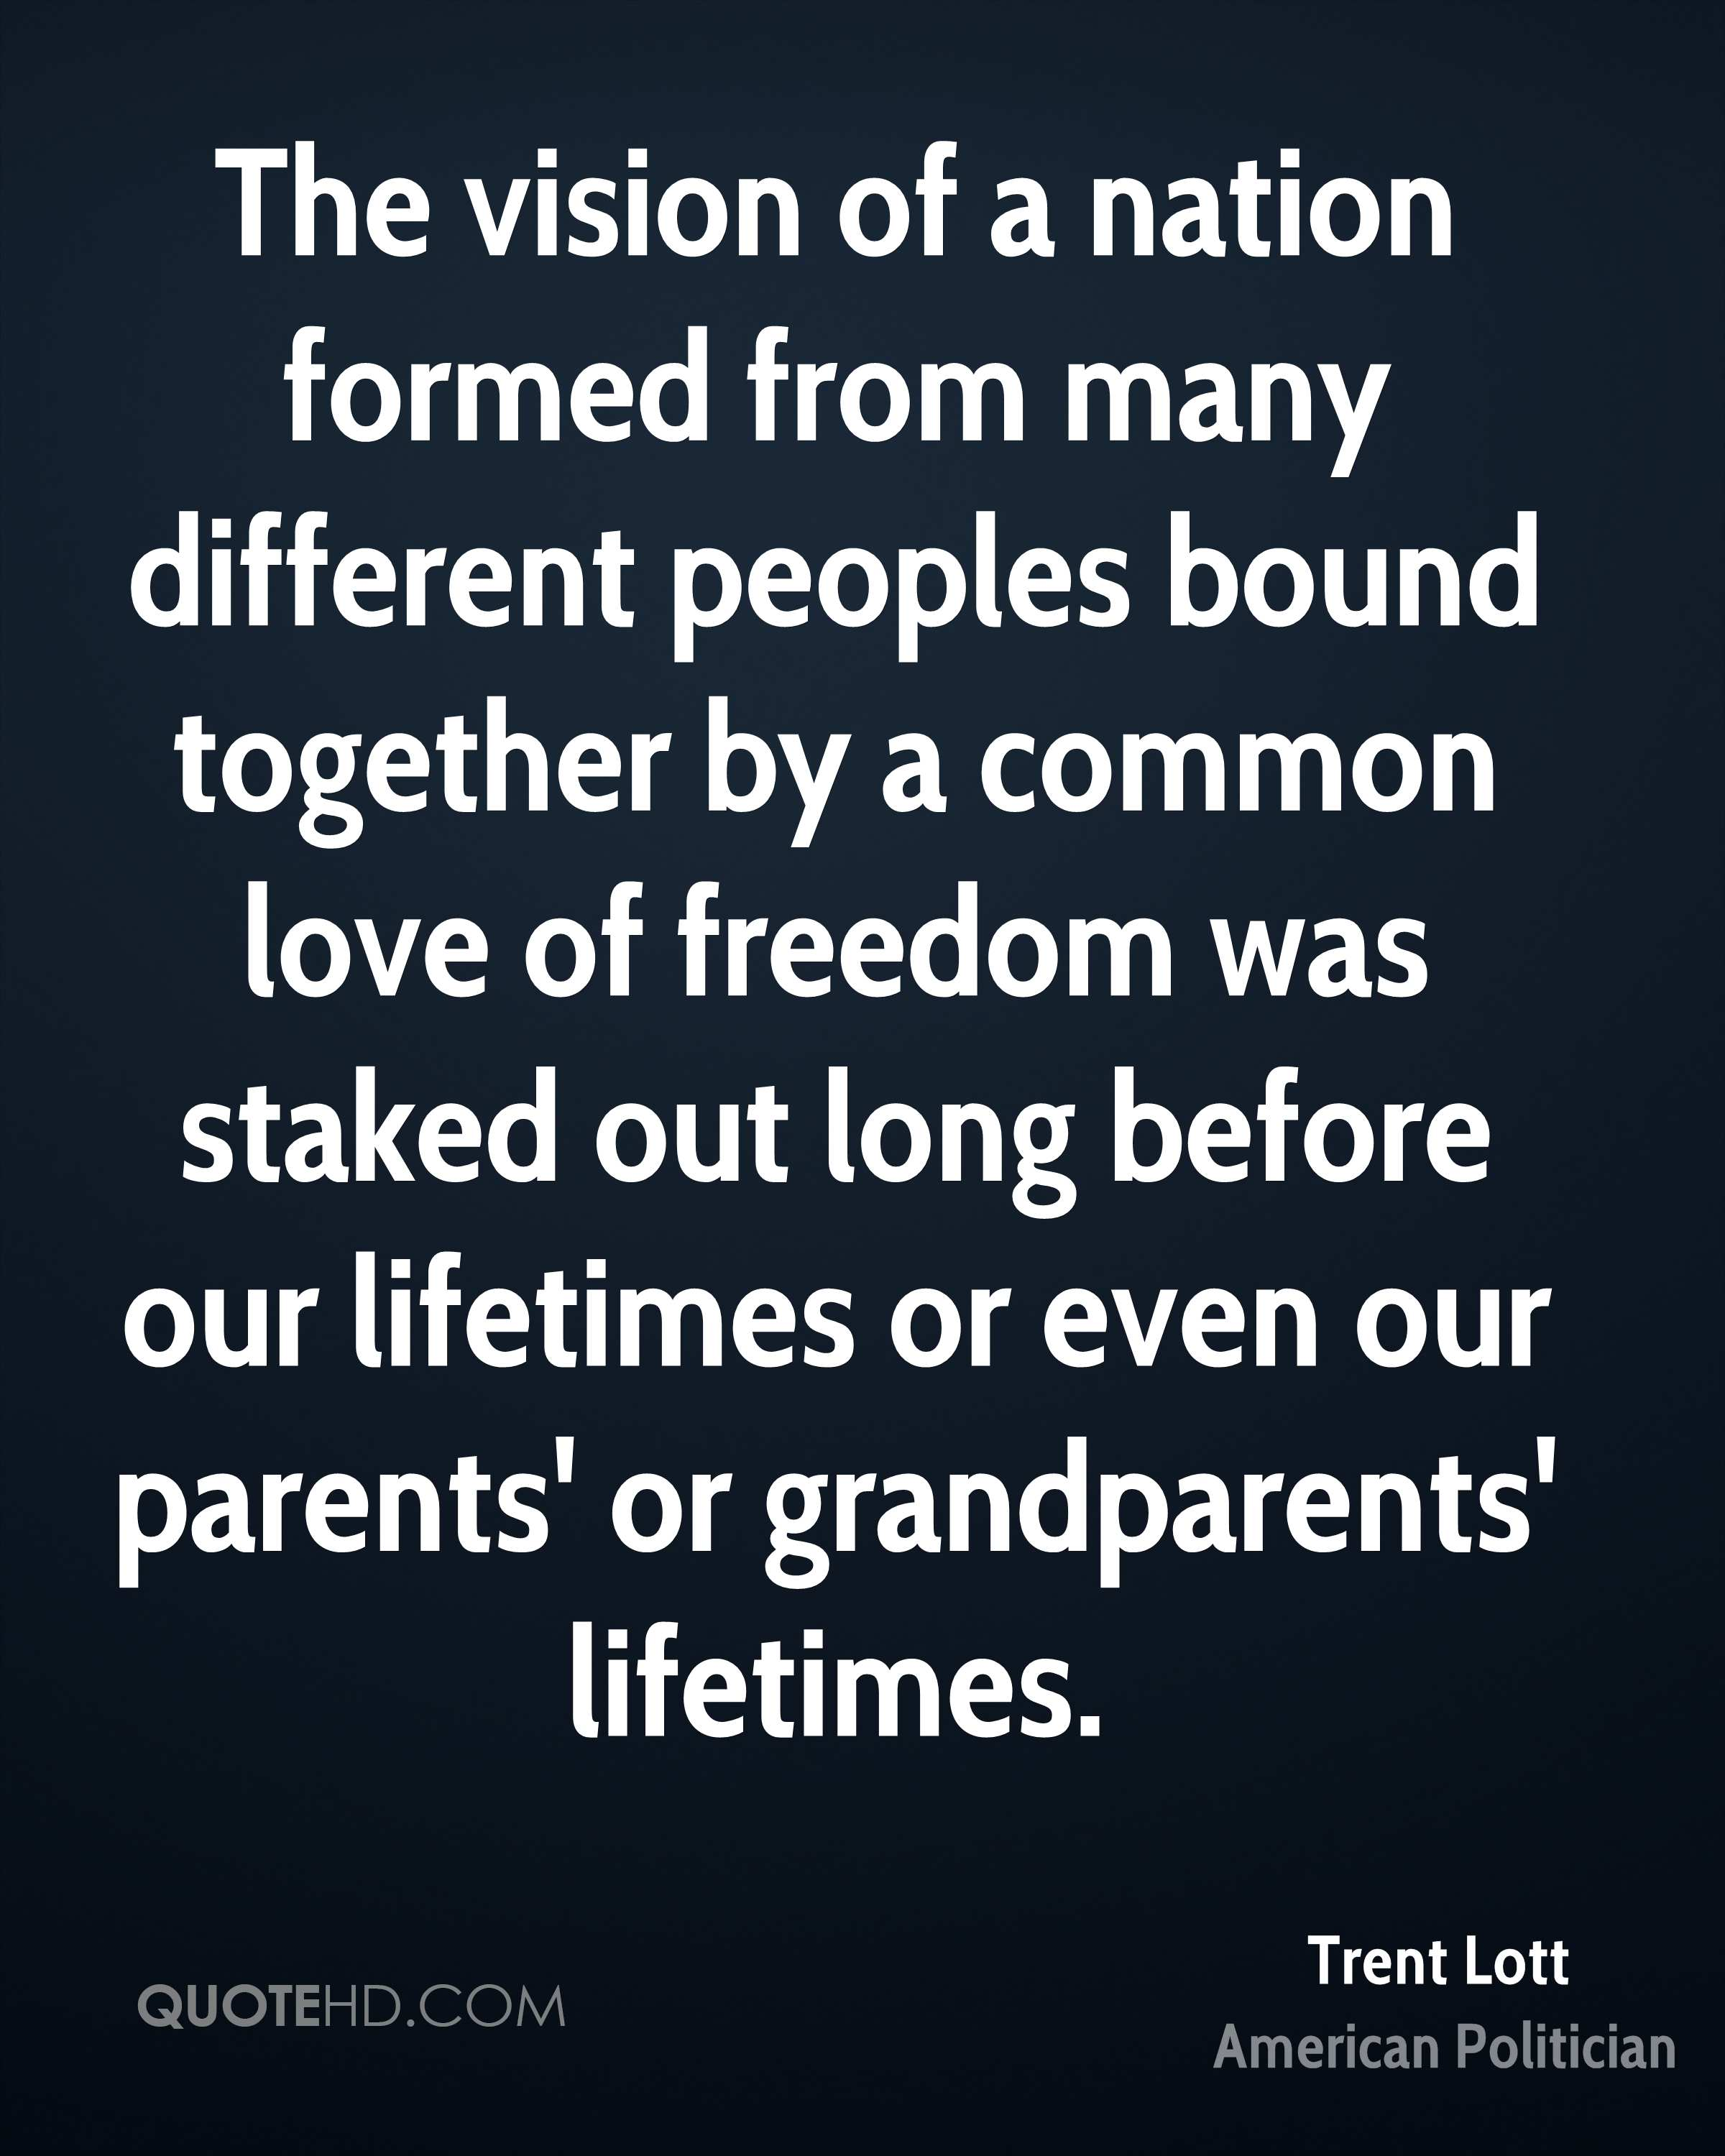 The vision of a nation formed from many different peoples bound together by a common love of freedom was staked out long before our lifetimes or even our parents' or grandparents' lifetimes.